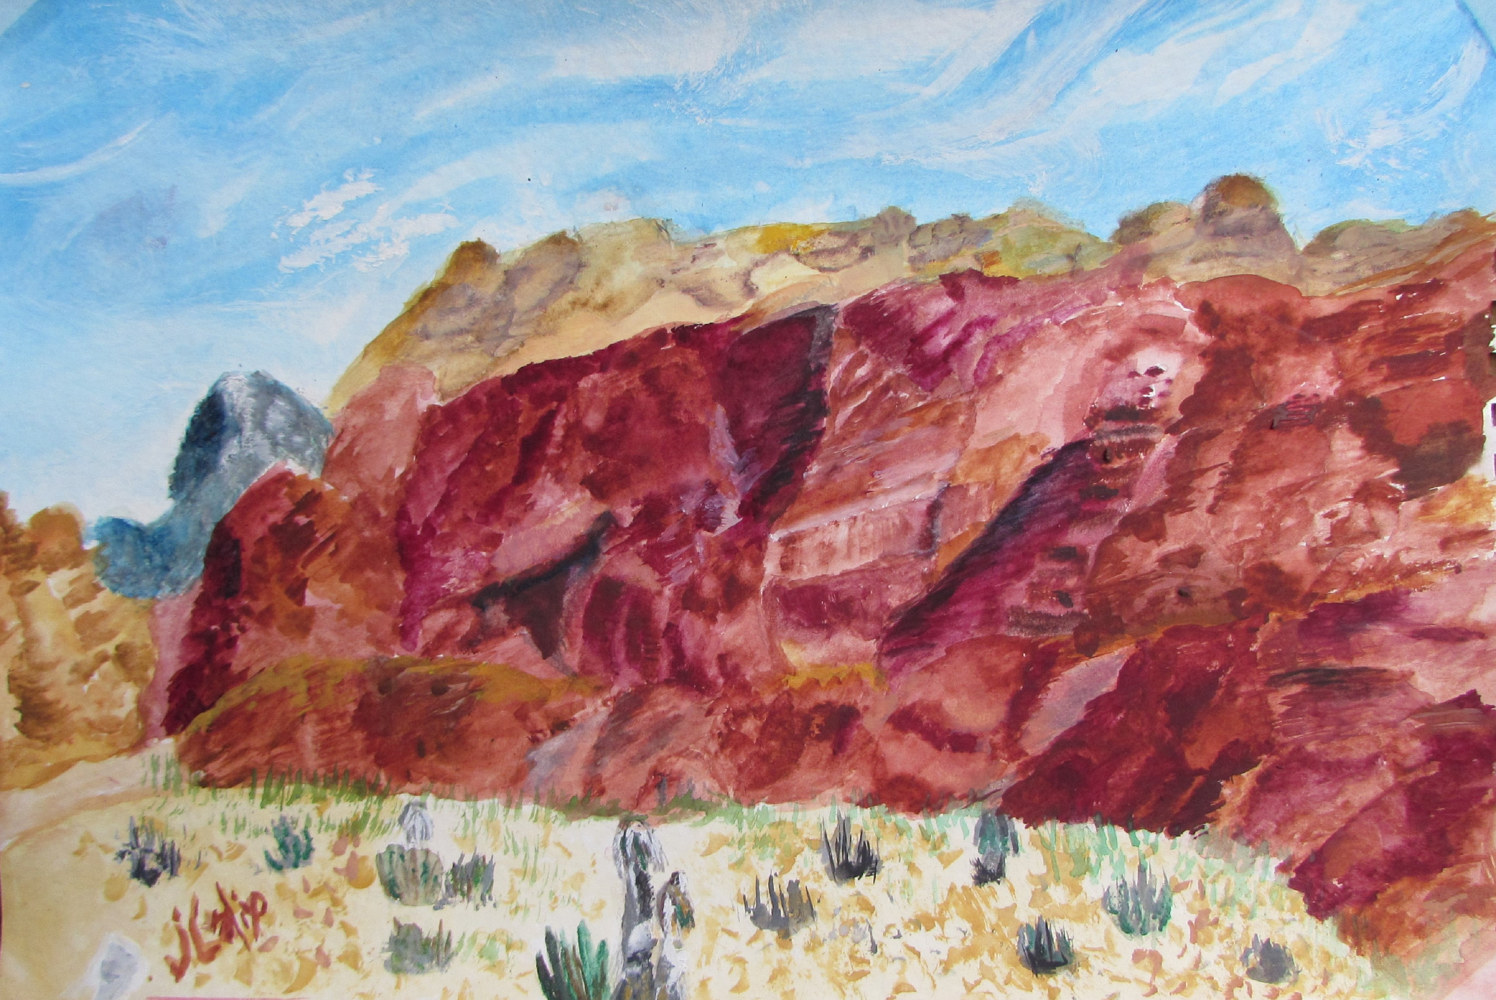 Watercolor Red Rock Canyon, Las Vegas by Jasmine Calix